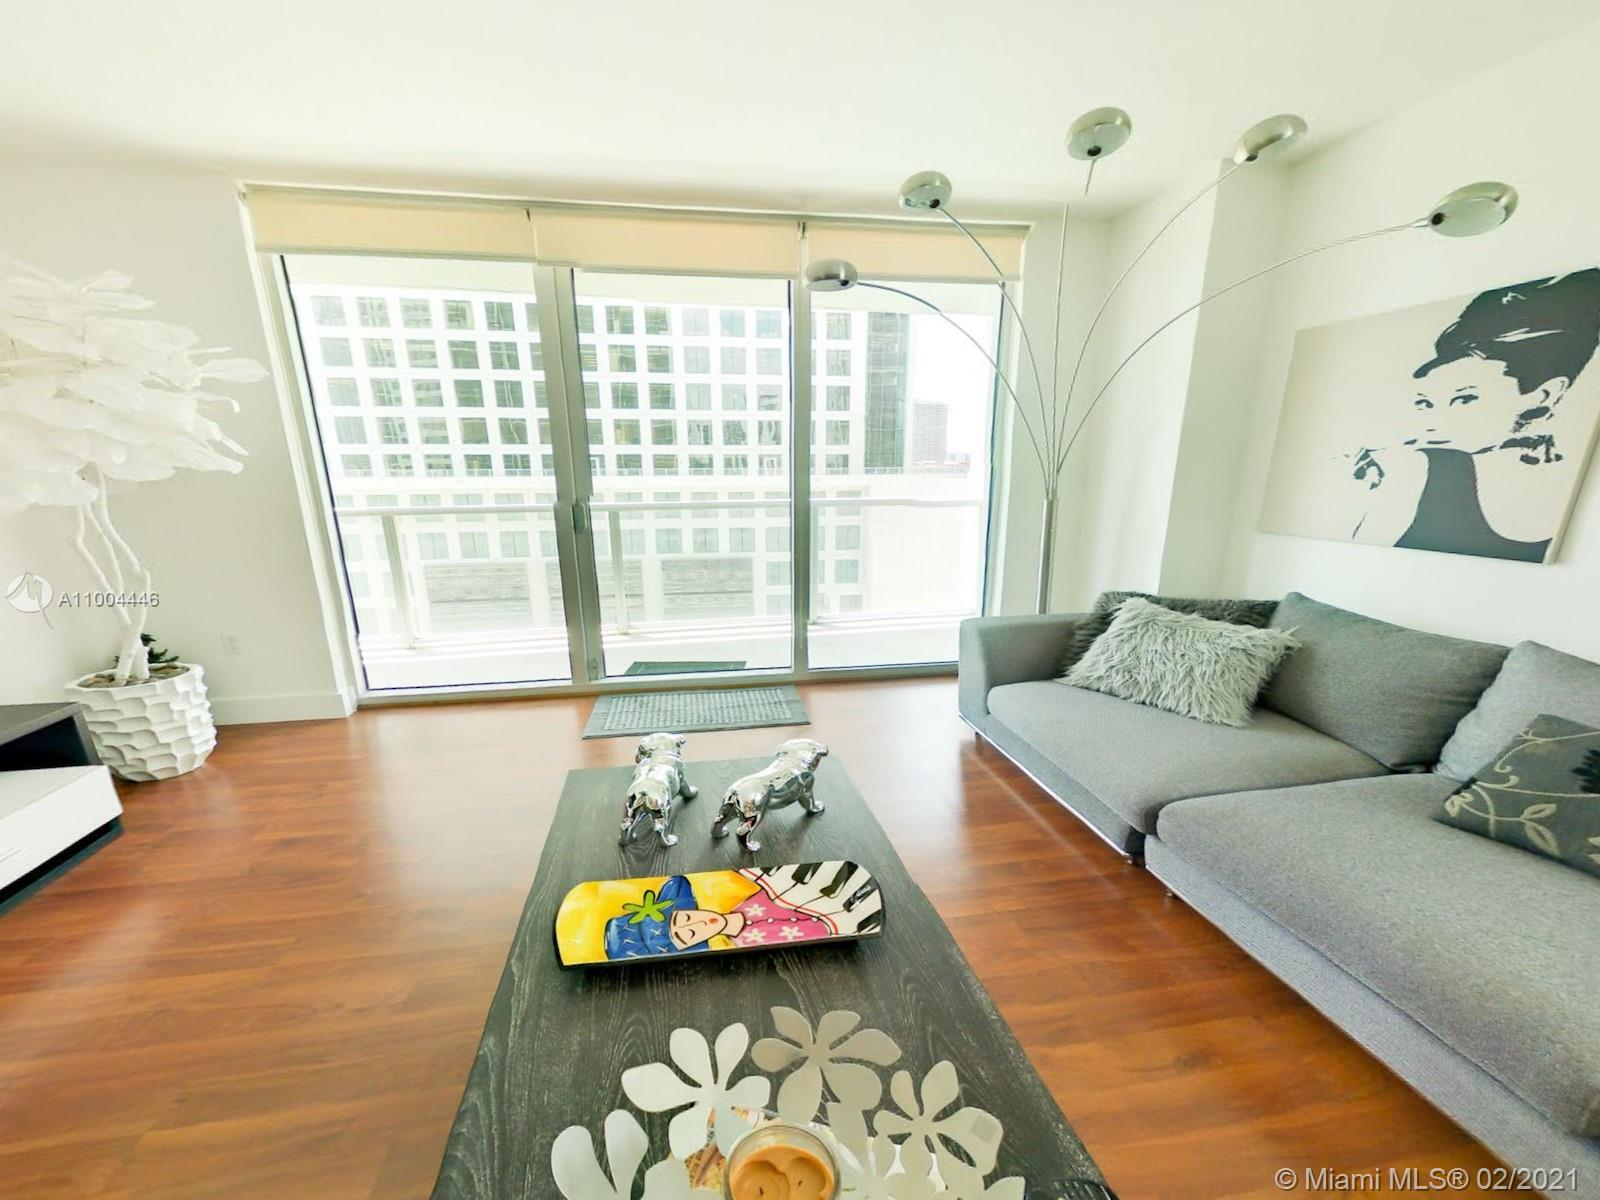 500 Brickell West Tower #1410 - 500 Brickell Ave #1410, Miami, FL 33131